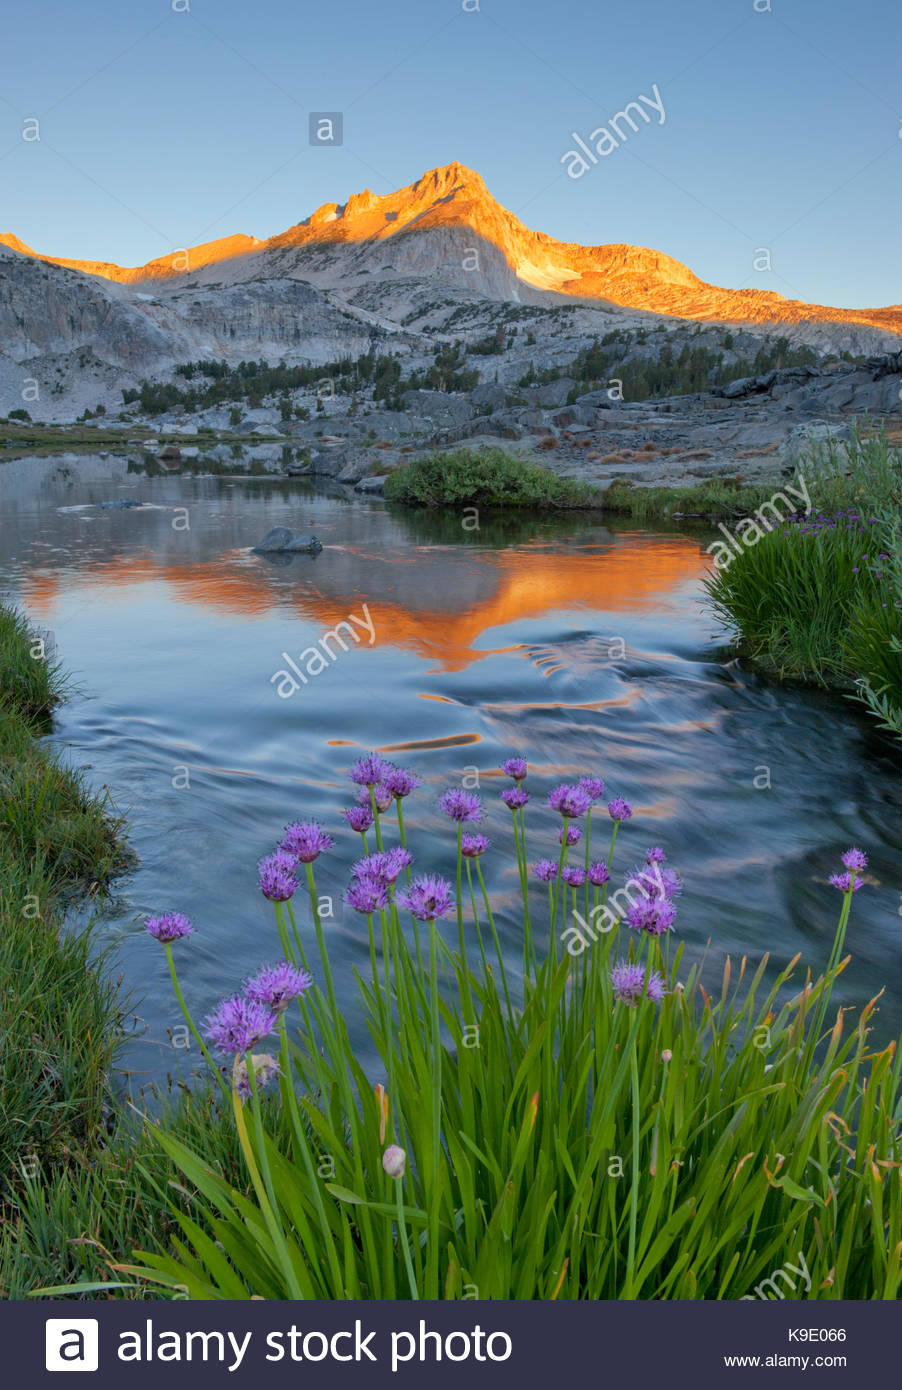 L'oignon sauvage, Greenstone Lake et North Peak, Hoover Wilderness, Inyo National Forest, Californie Photo Stock